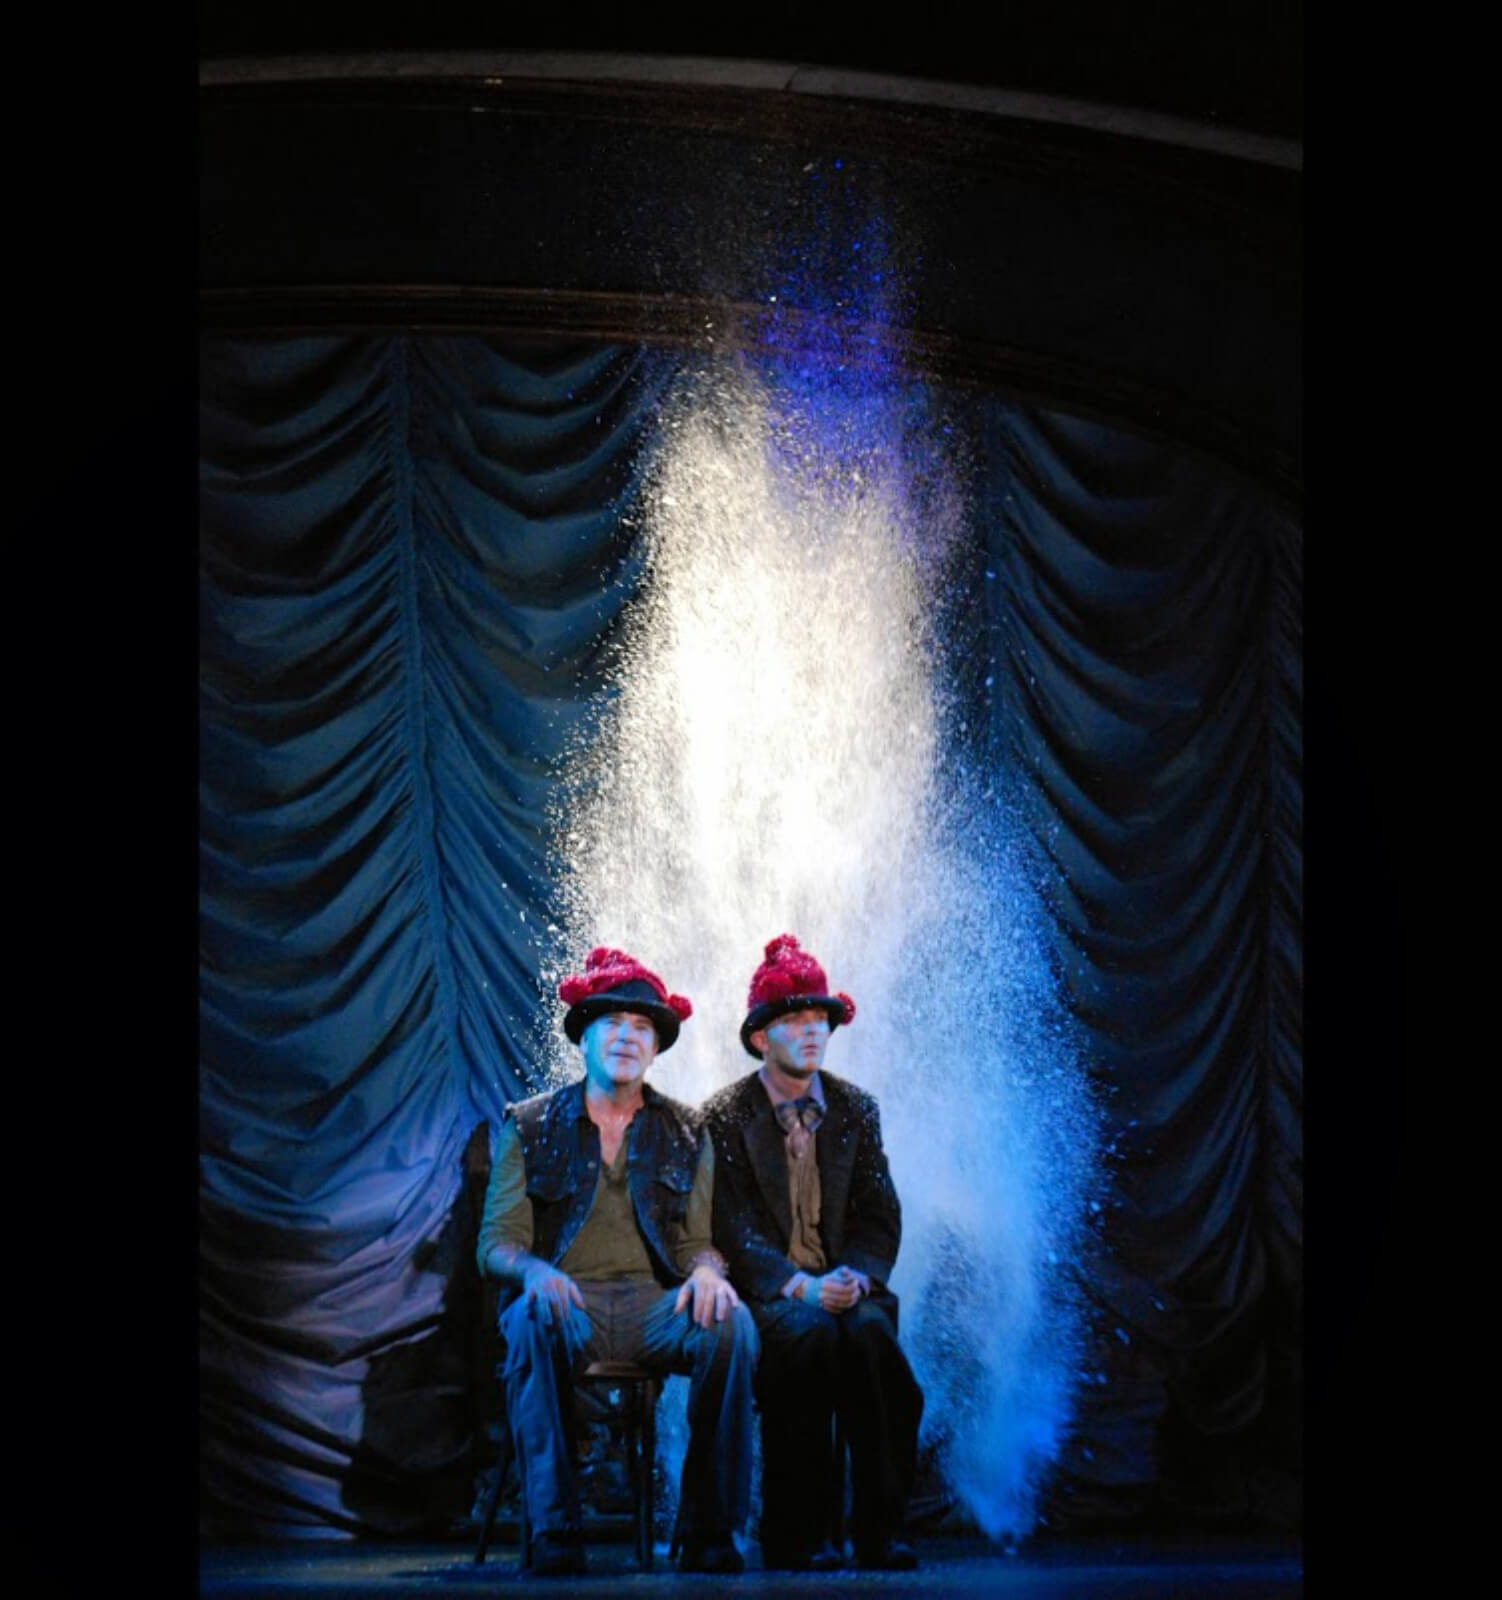 """Mandy Patinkin and Taylor Mac singing """"Snow"""". They are sitting close together with red wool hats on and a large amount of snow is falling from above."""